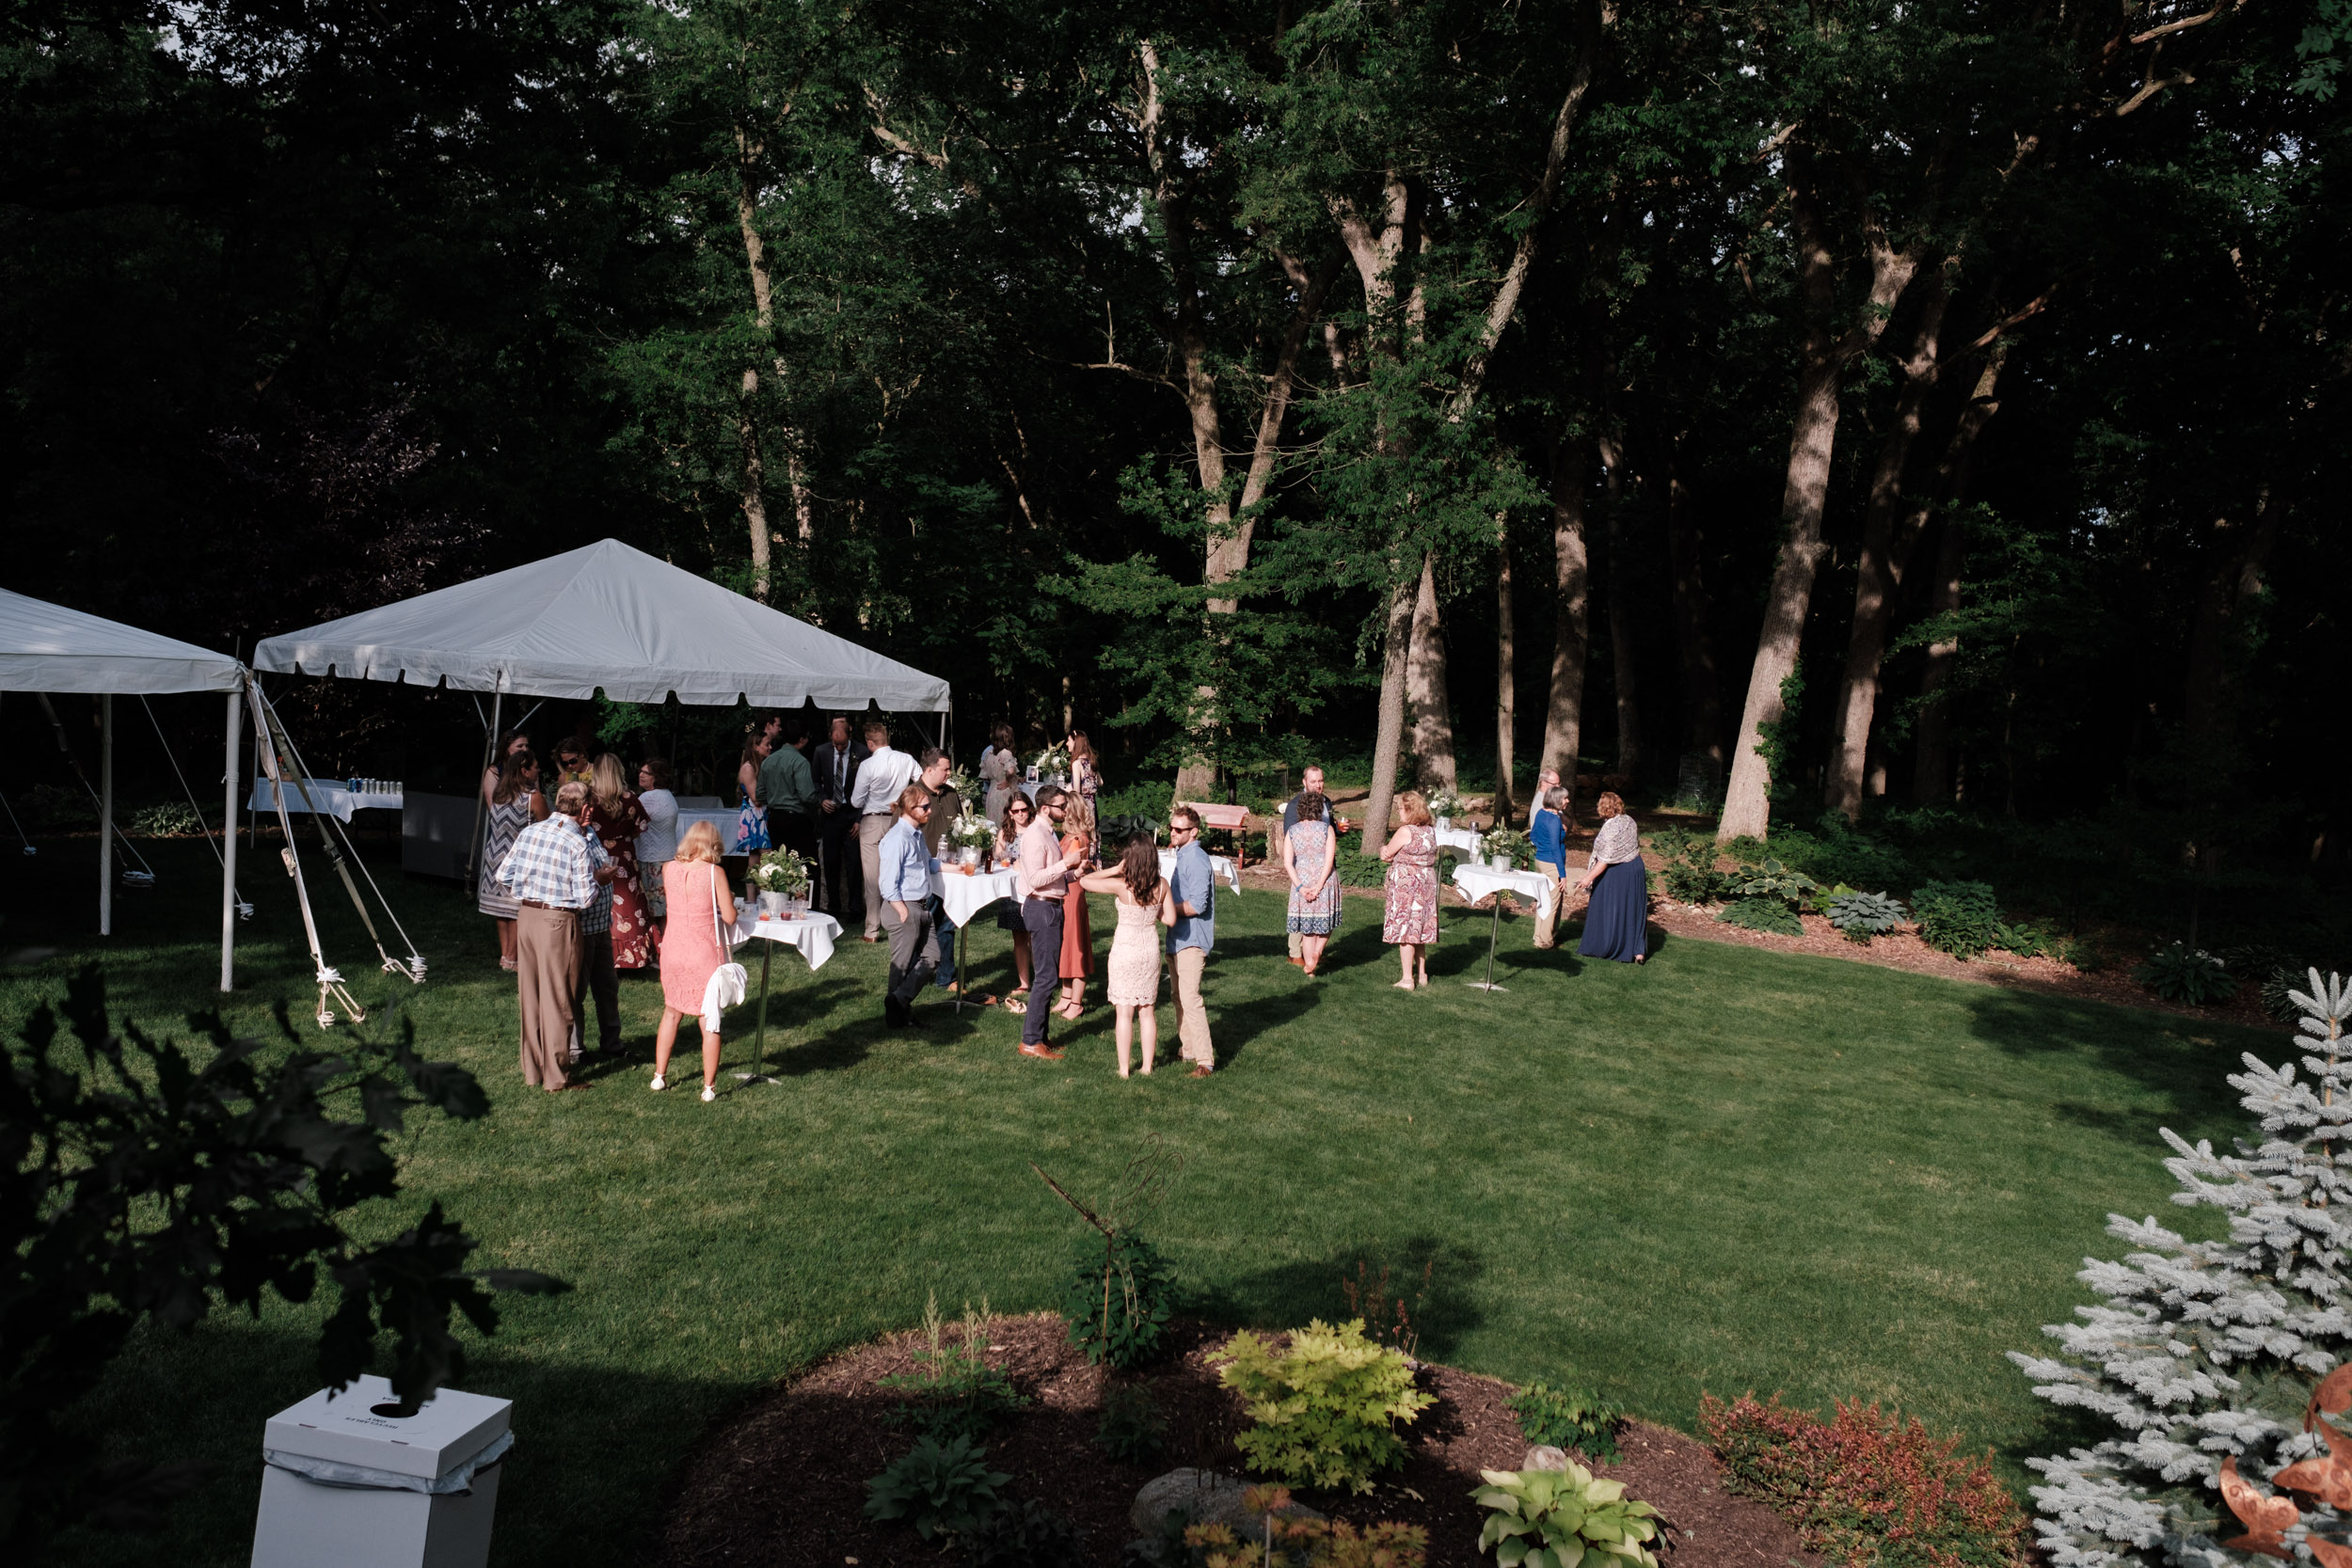 19-06-08 Liz-Mike-Belvidere-Backyard-Wedding-76.jpg